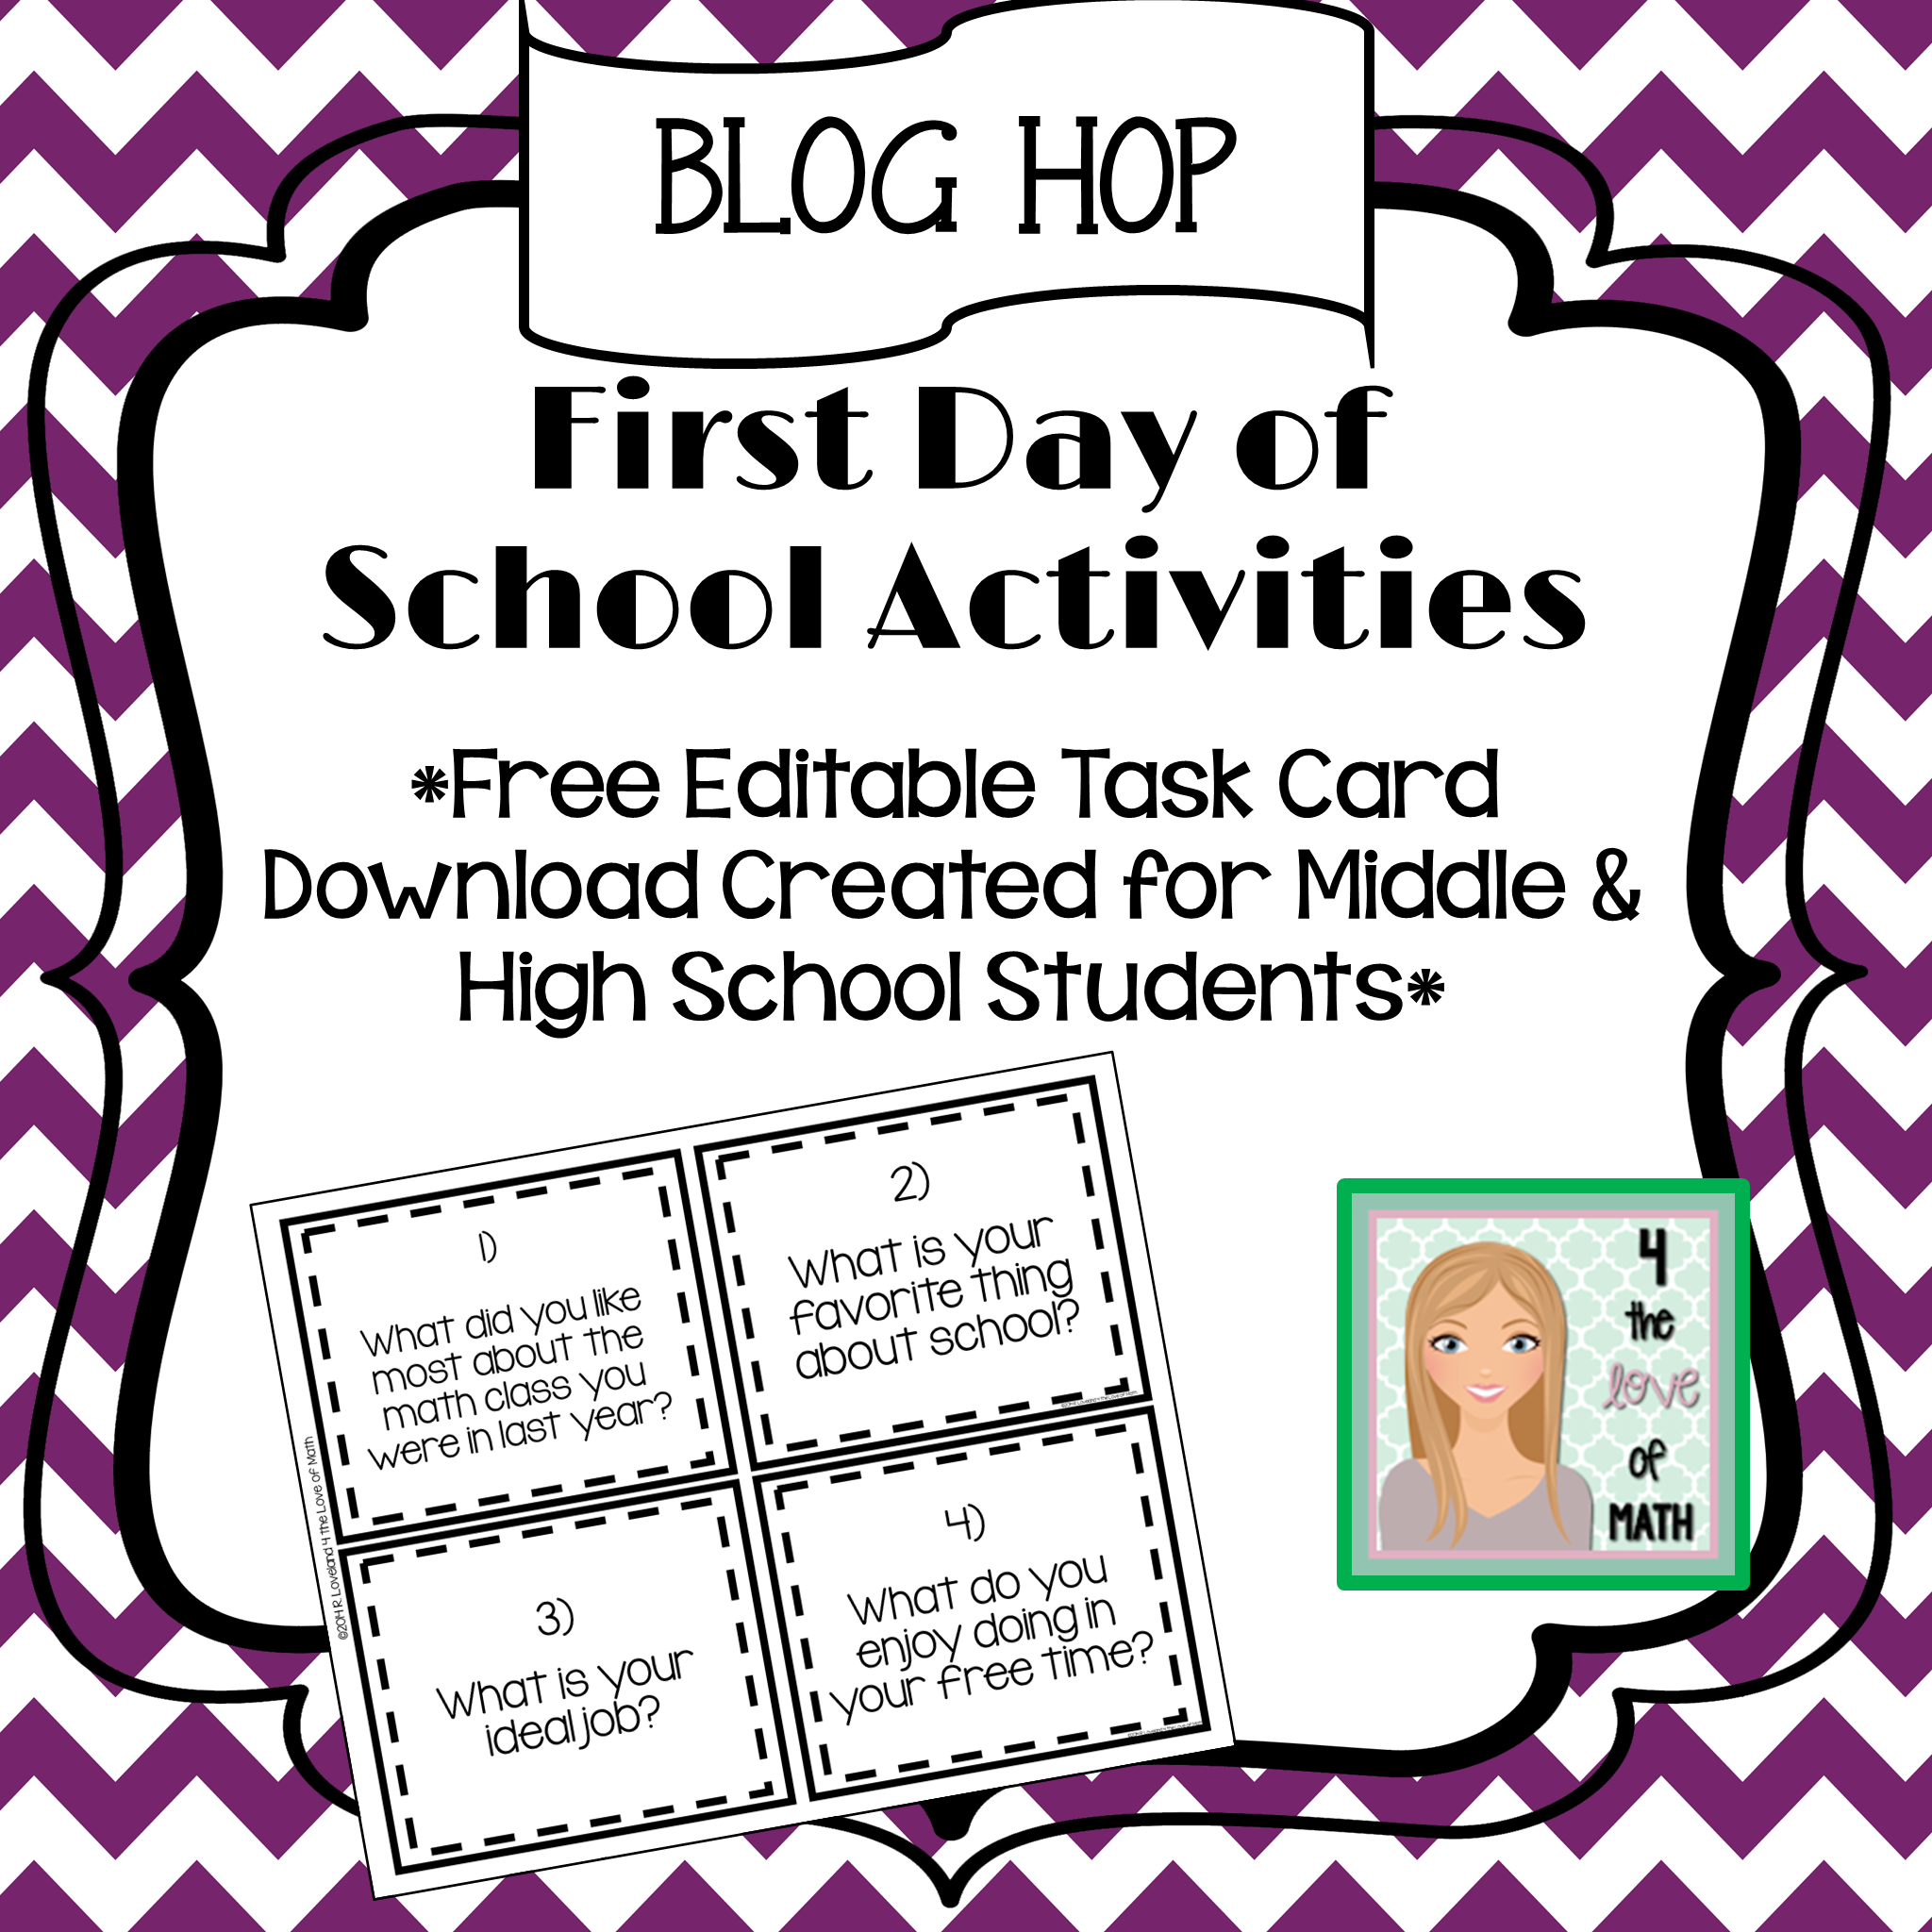 First Day Of School Activities Blog Hop Check Out This